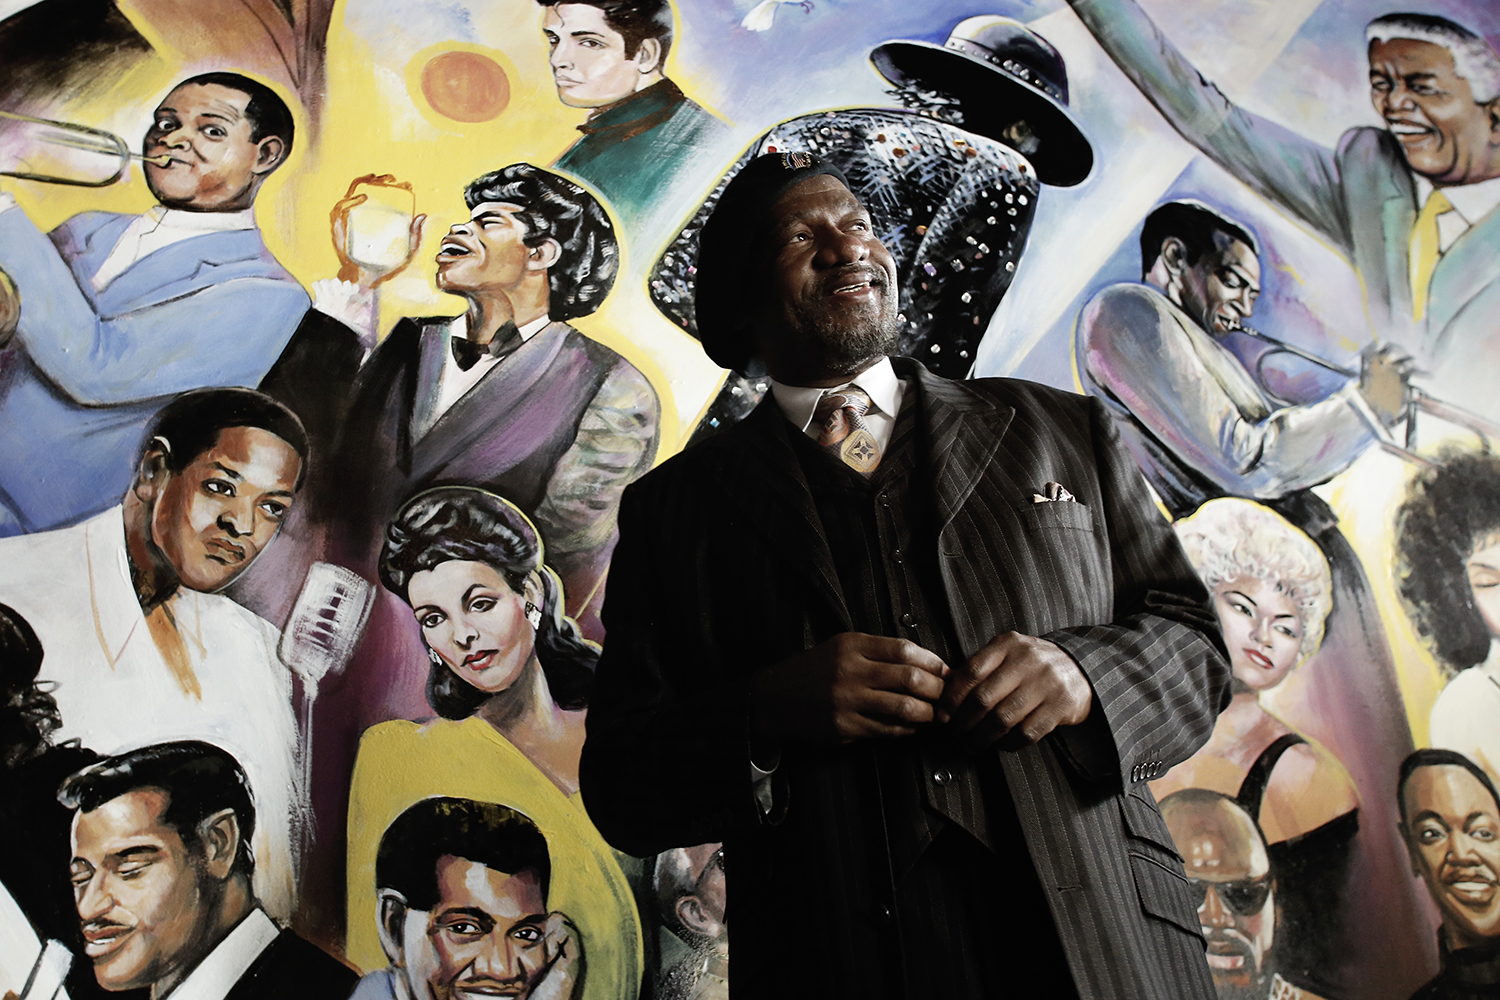 Curtis Lewis II of Farmington Hills answers questions at the unveiling of his mural at Bert's Warehouse Jazz Cafe on Dec. 19, 2013 in Detroit.